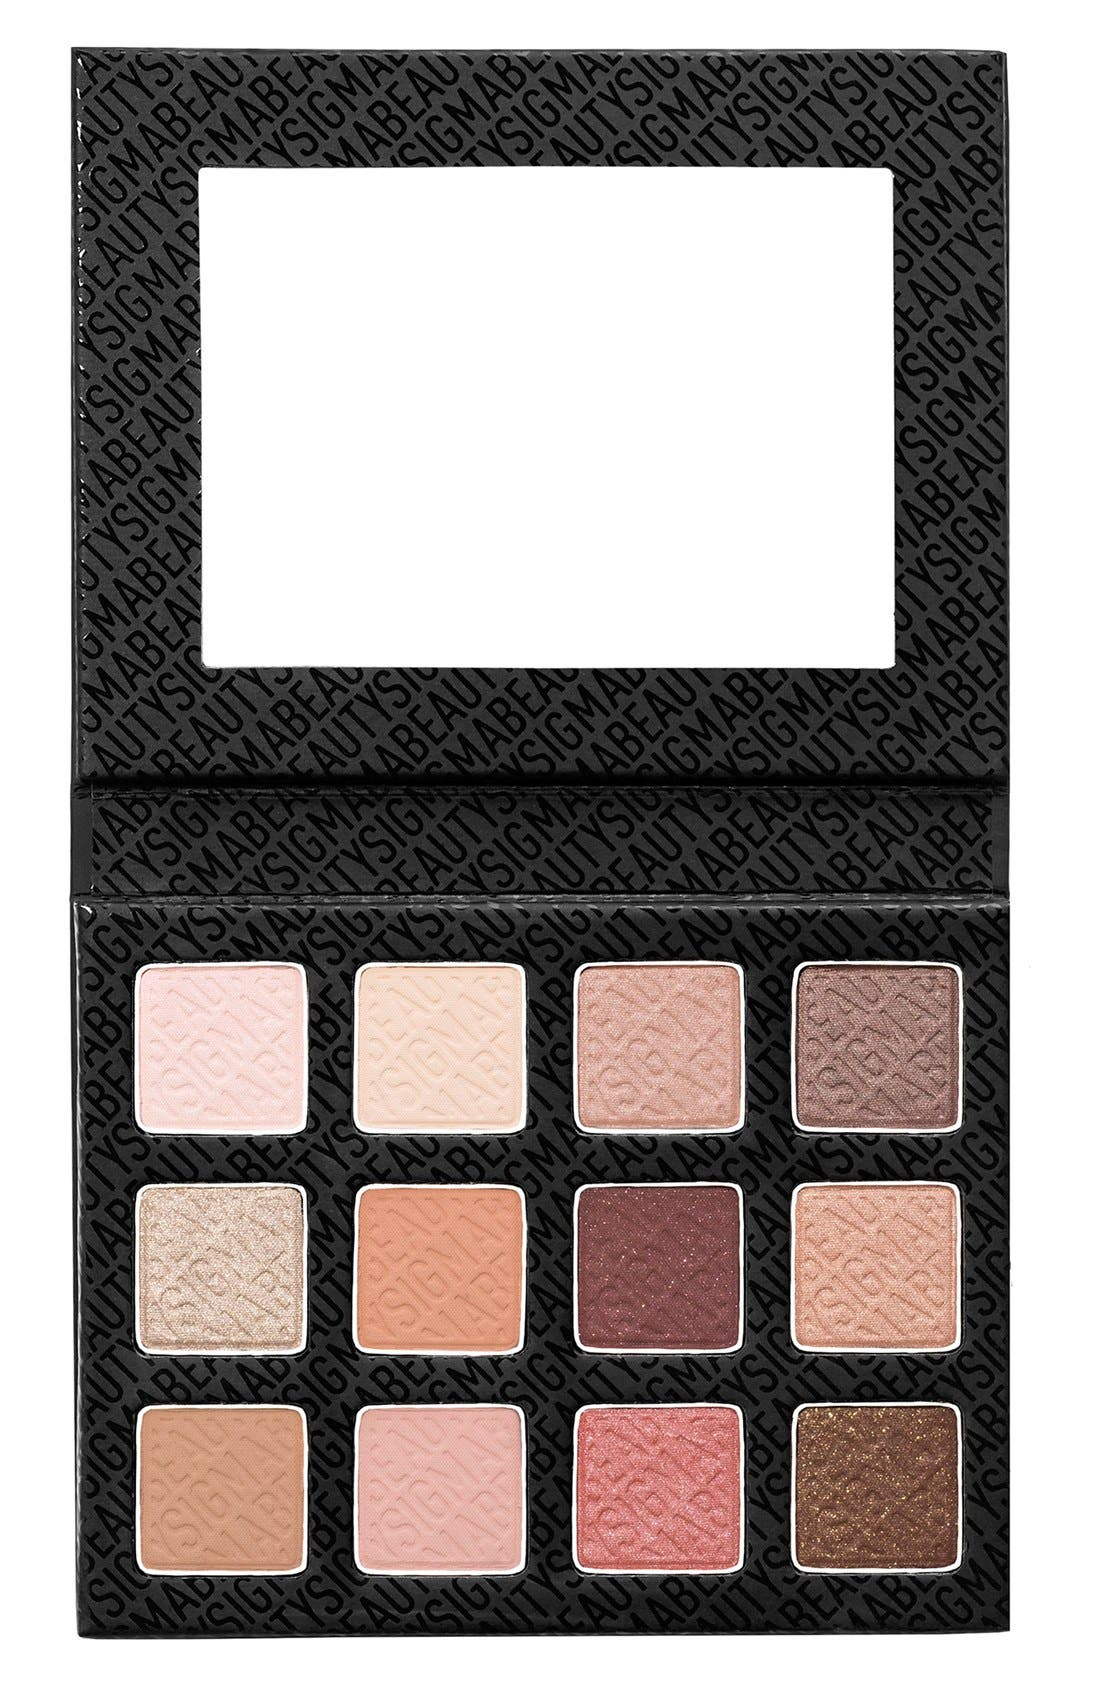 Warm Neutrals Eyeshadow Palette,                         Main,                         color, 200